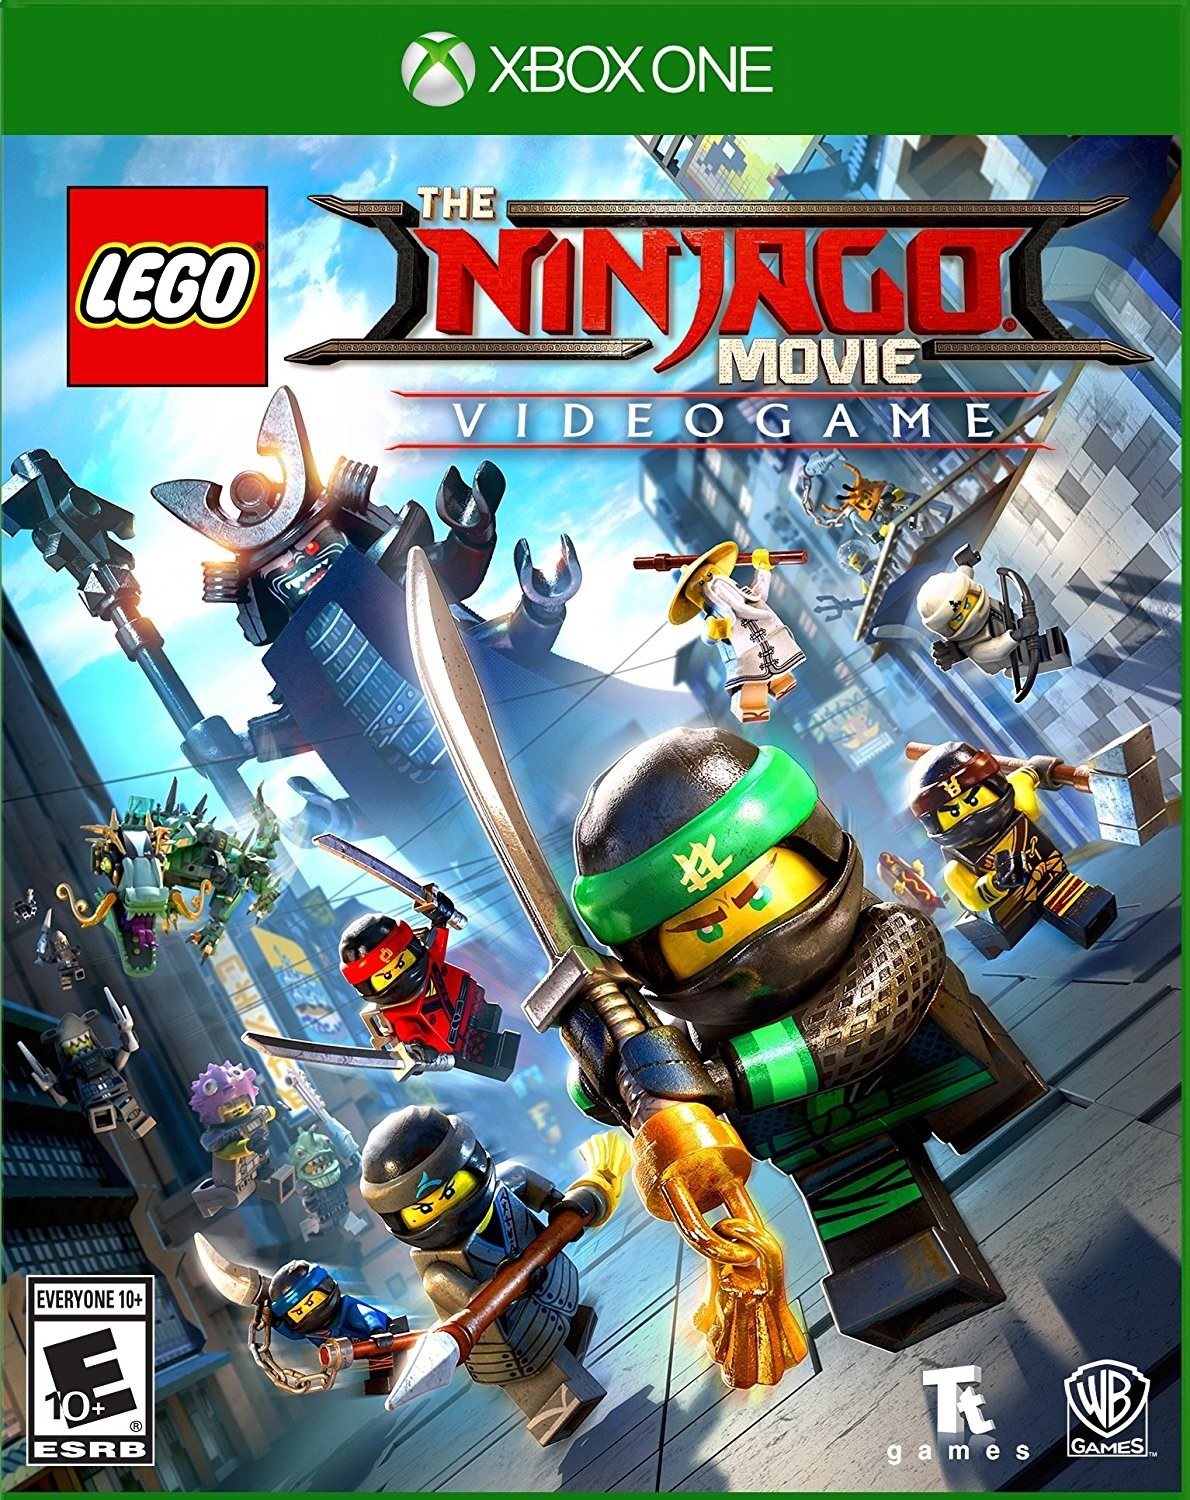 Warner Bros. The LEGO Ninjago Movie Videogame (Xbox One)